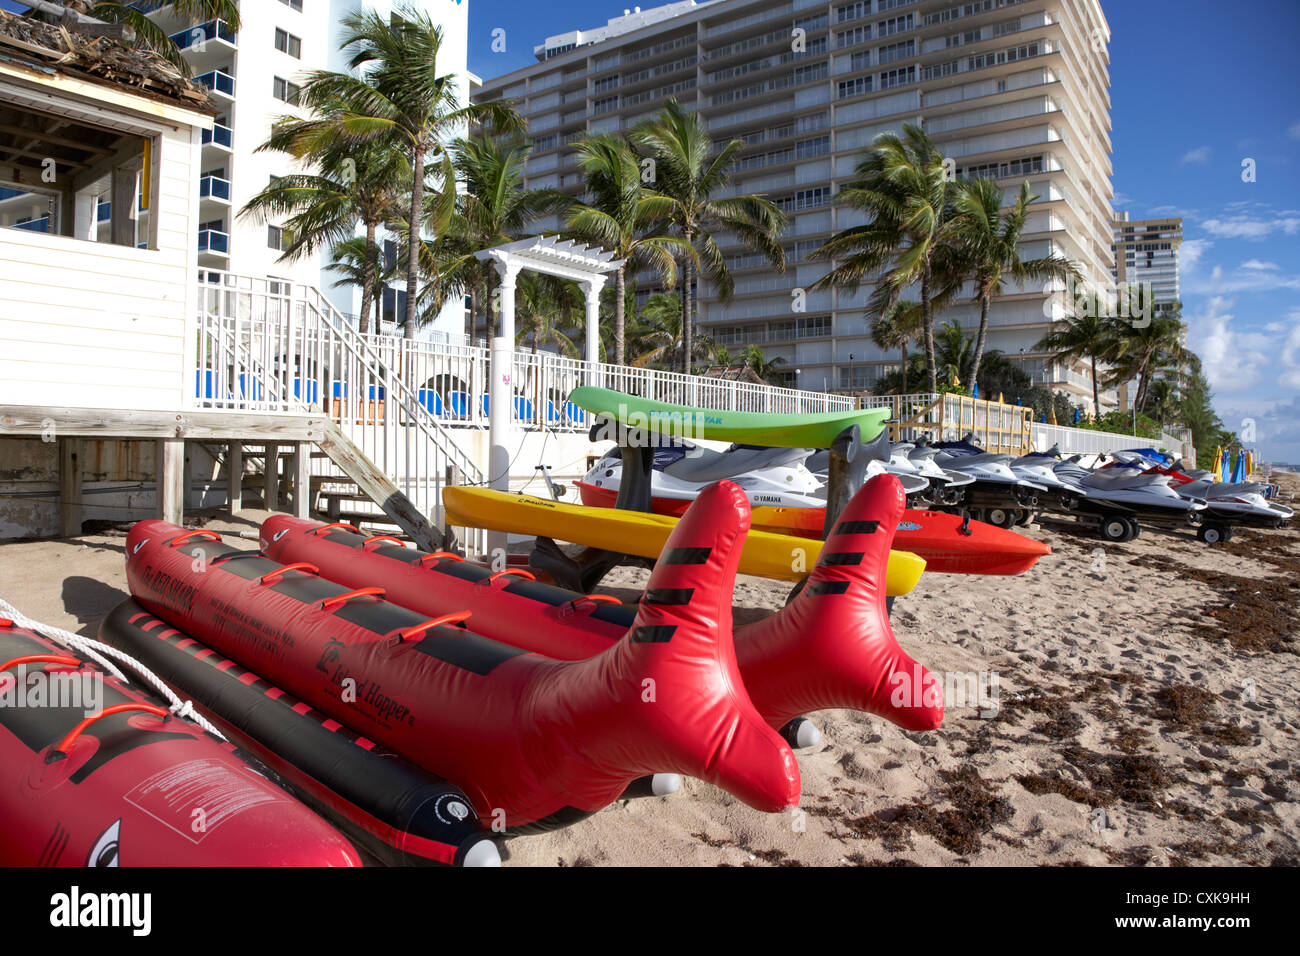 watersports equipment for hire in front of apartments hotels and beachfront developments fort lauderdale beach florida - Stock Image